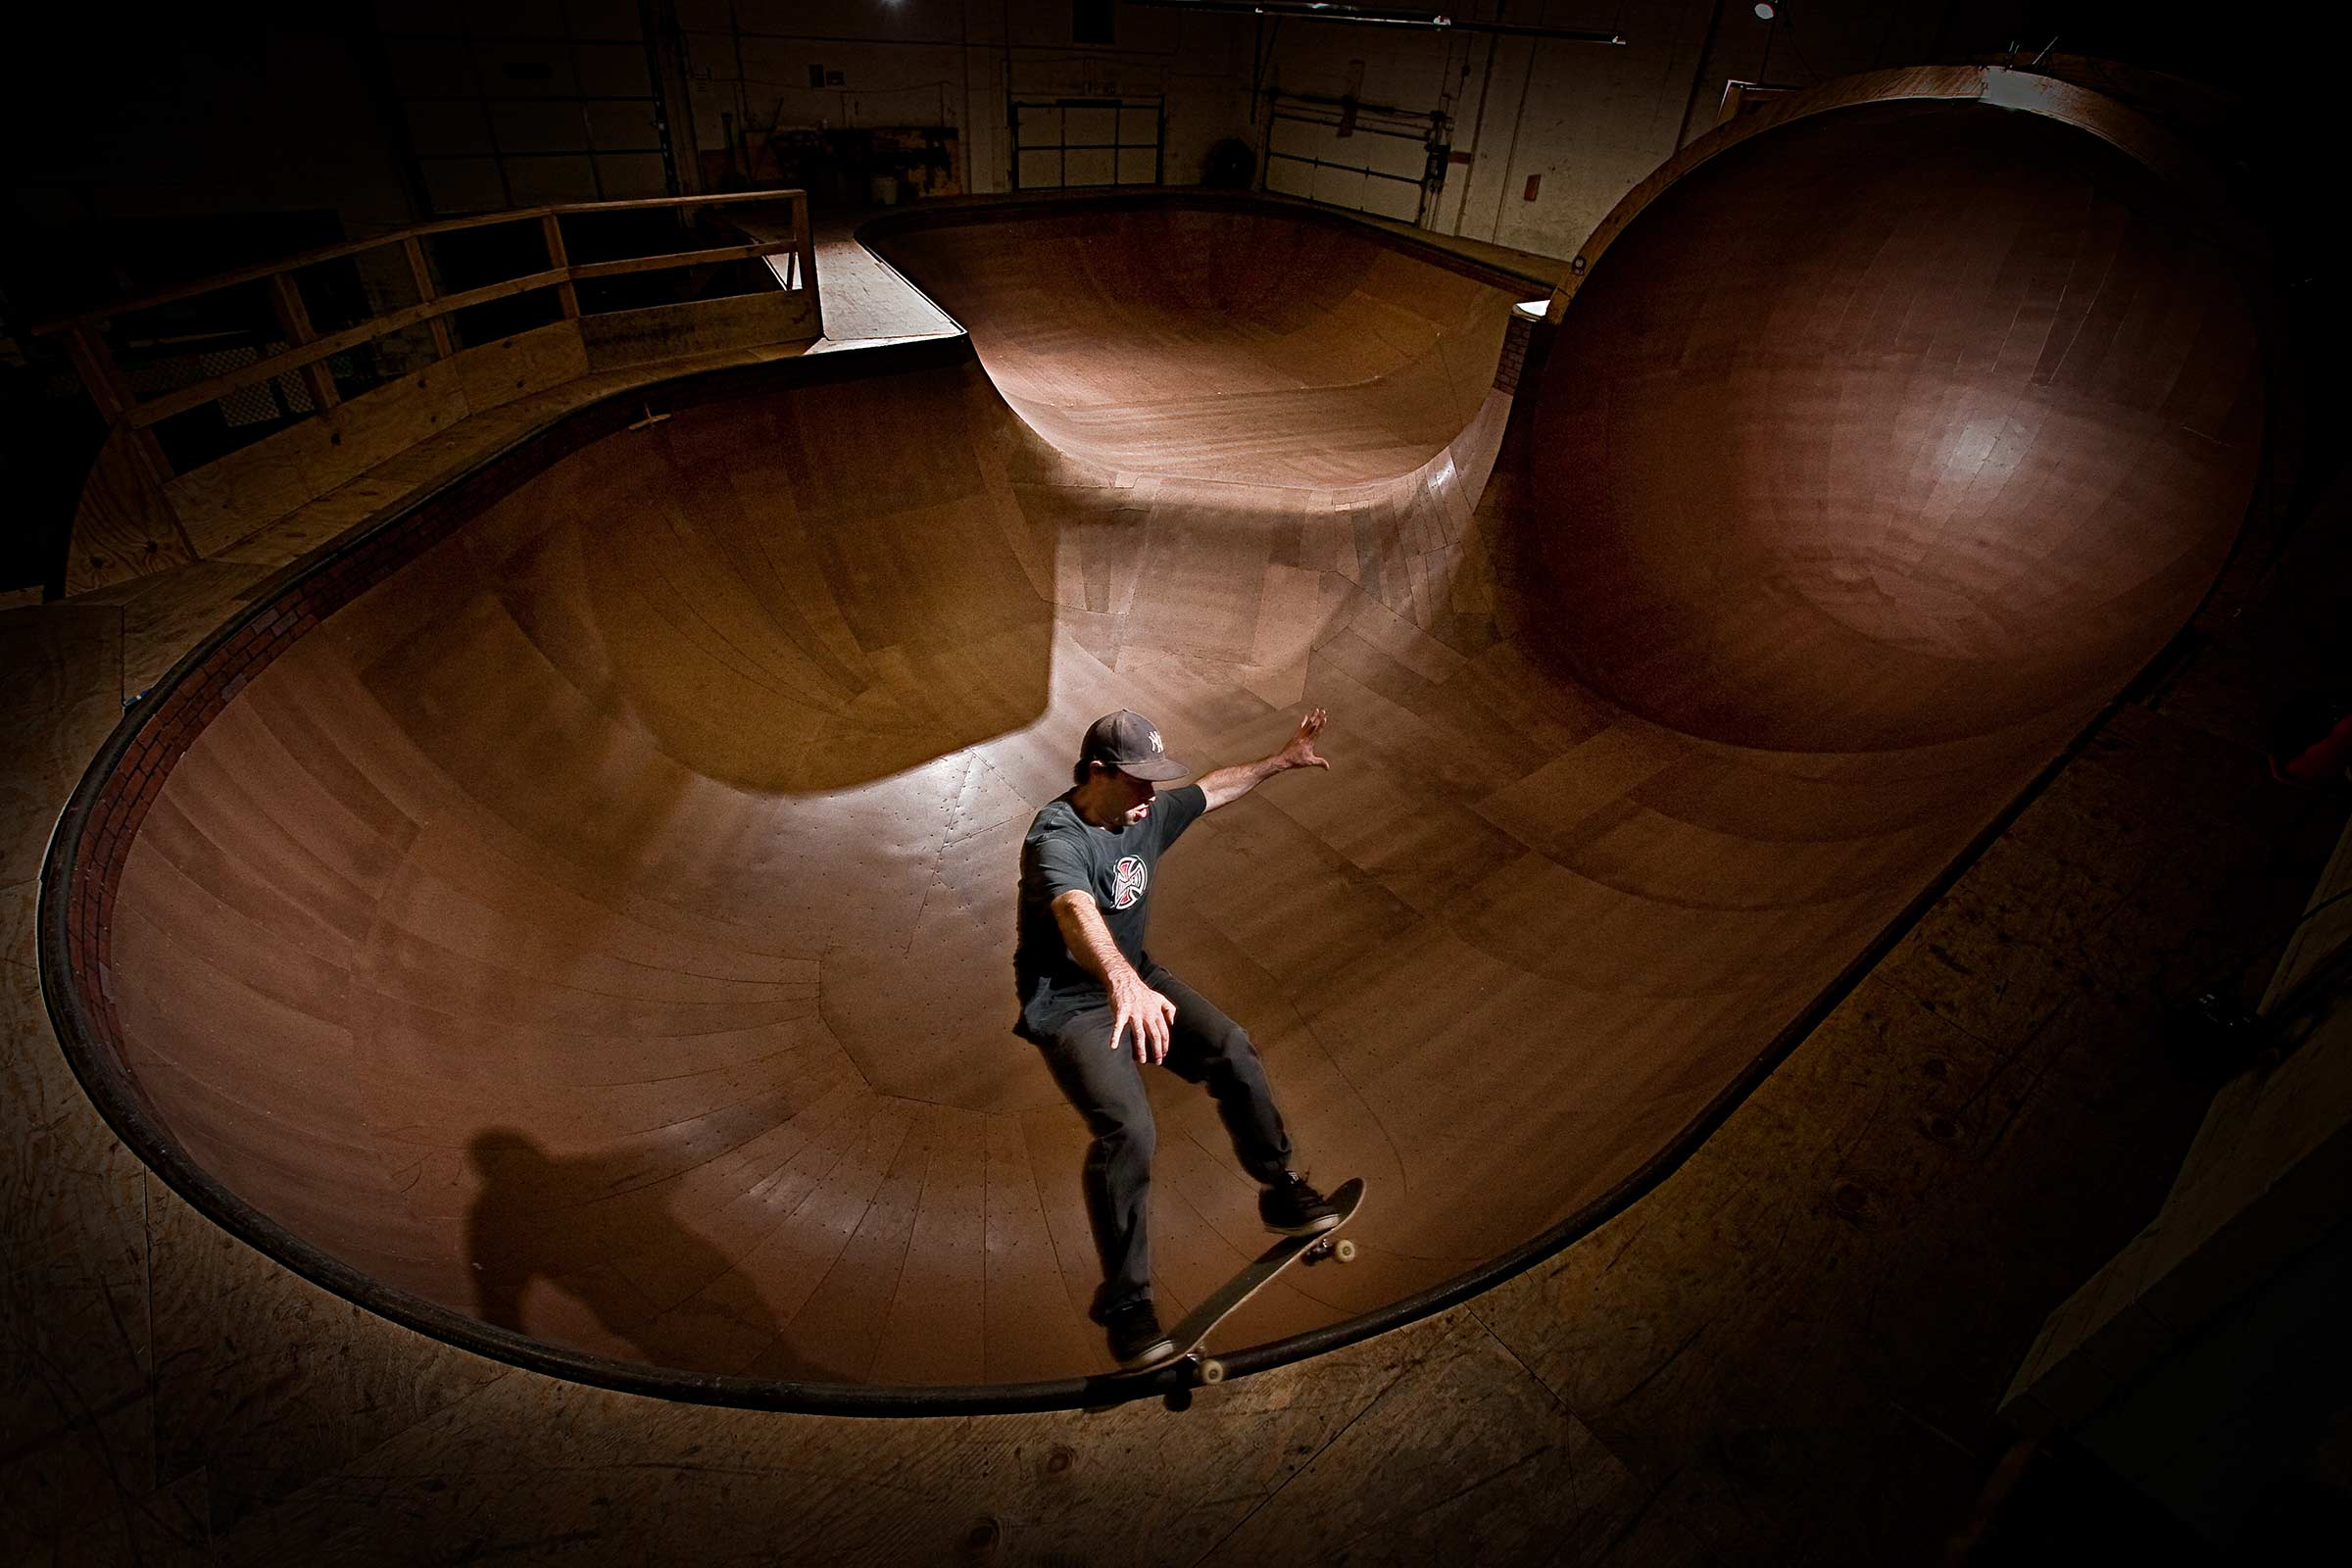 A dramatically lit action shot of a man skateboarding at an indoor park in Connecticut